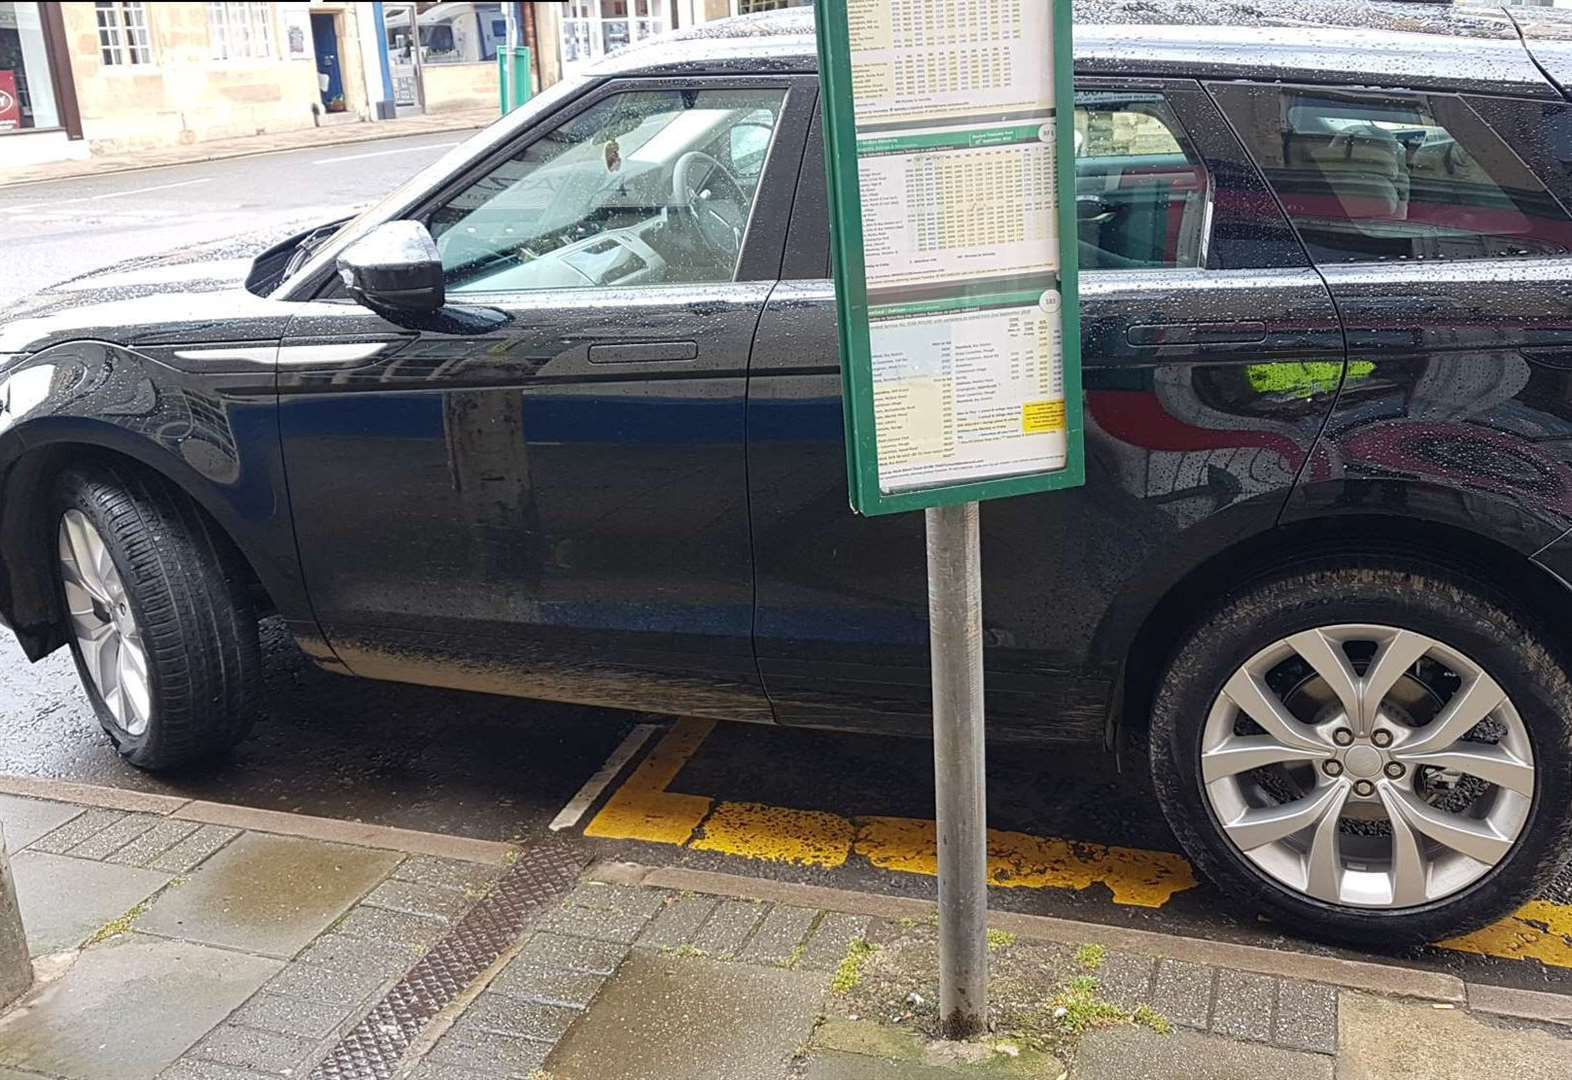 Crackdown on people who park dangerously